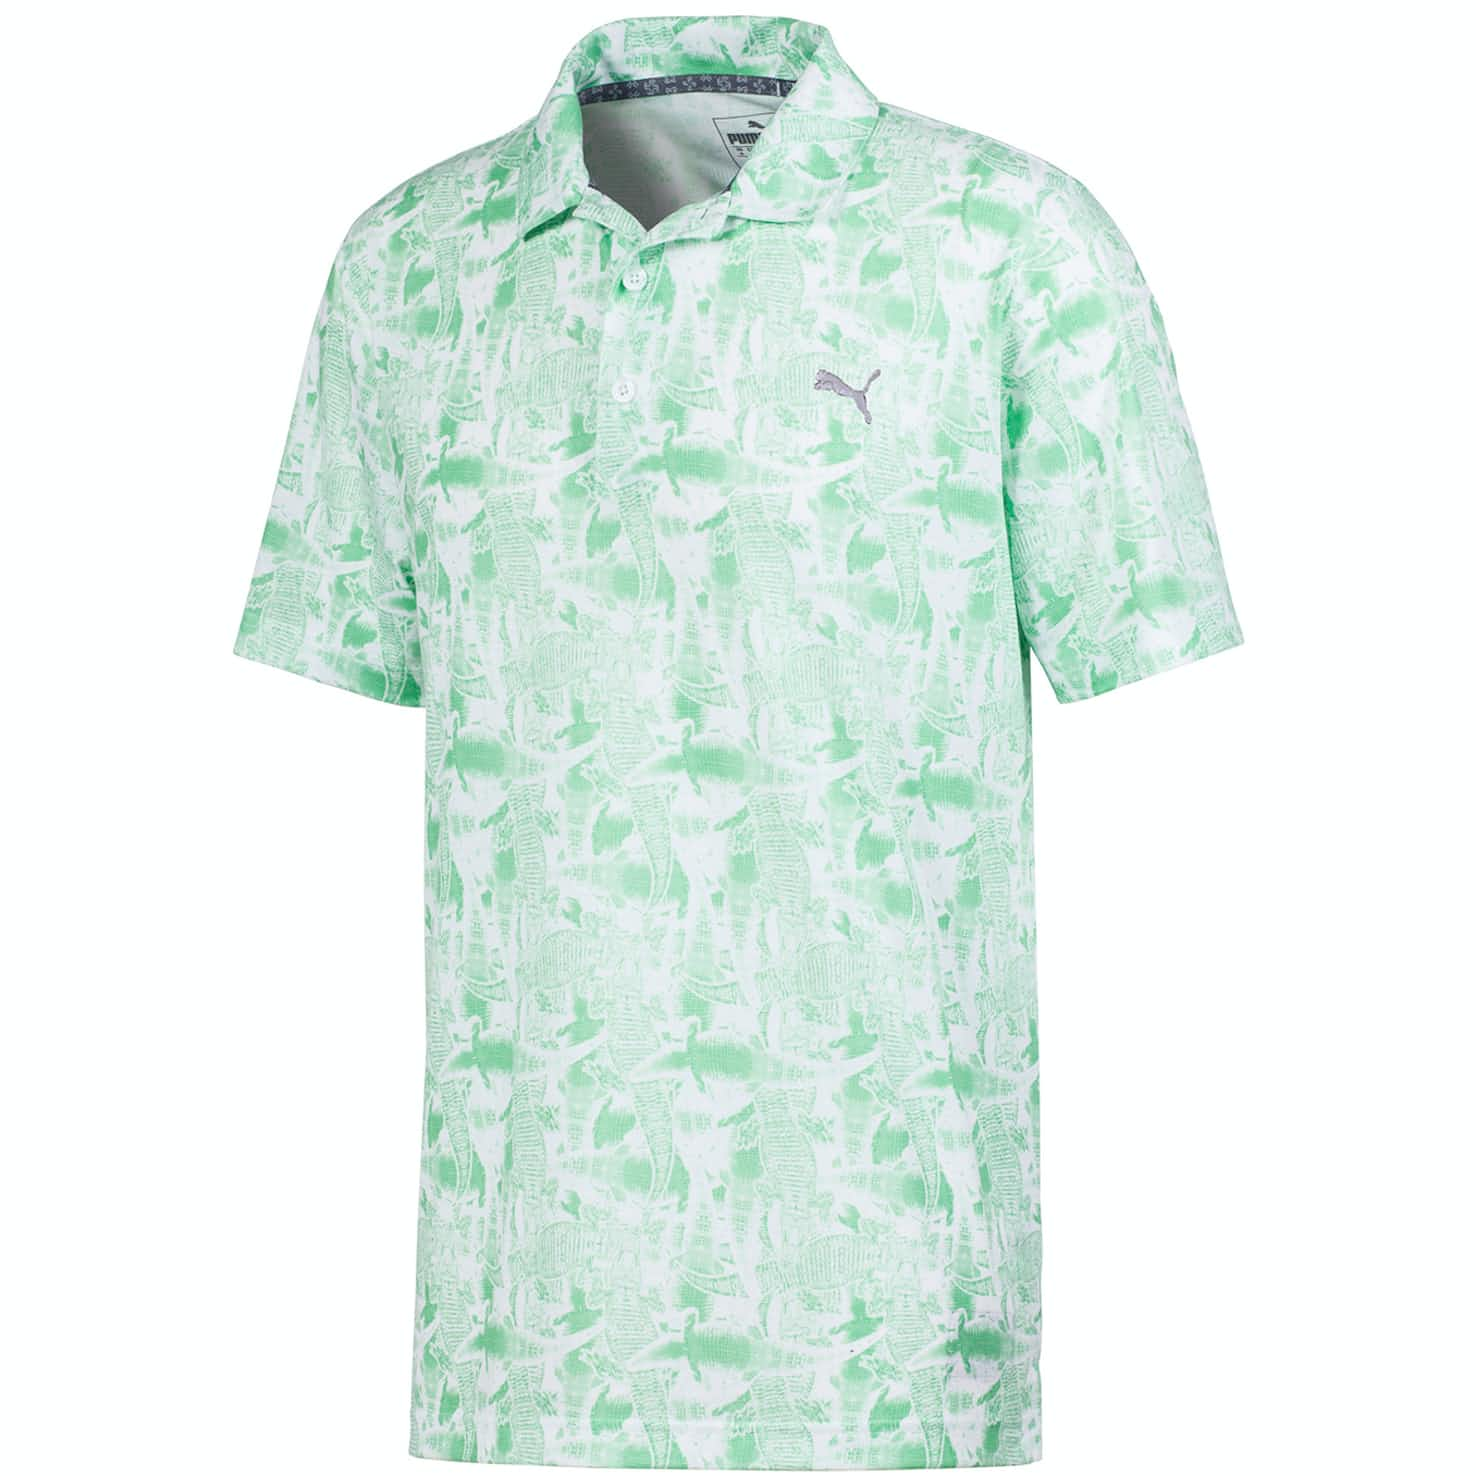 Chompers Polo Bright White/Irish Green - SS20